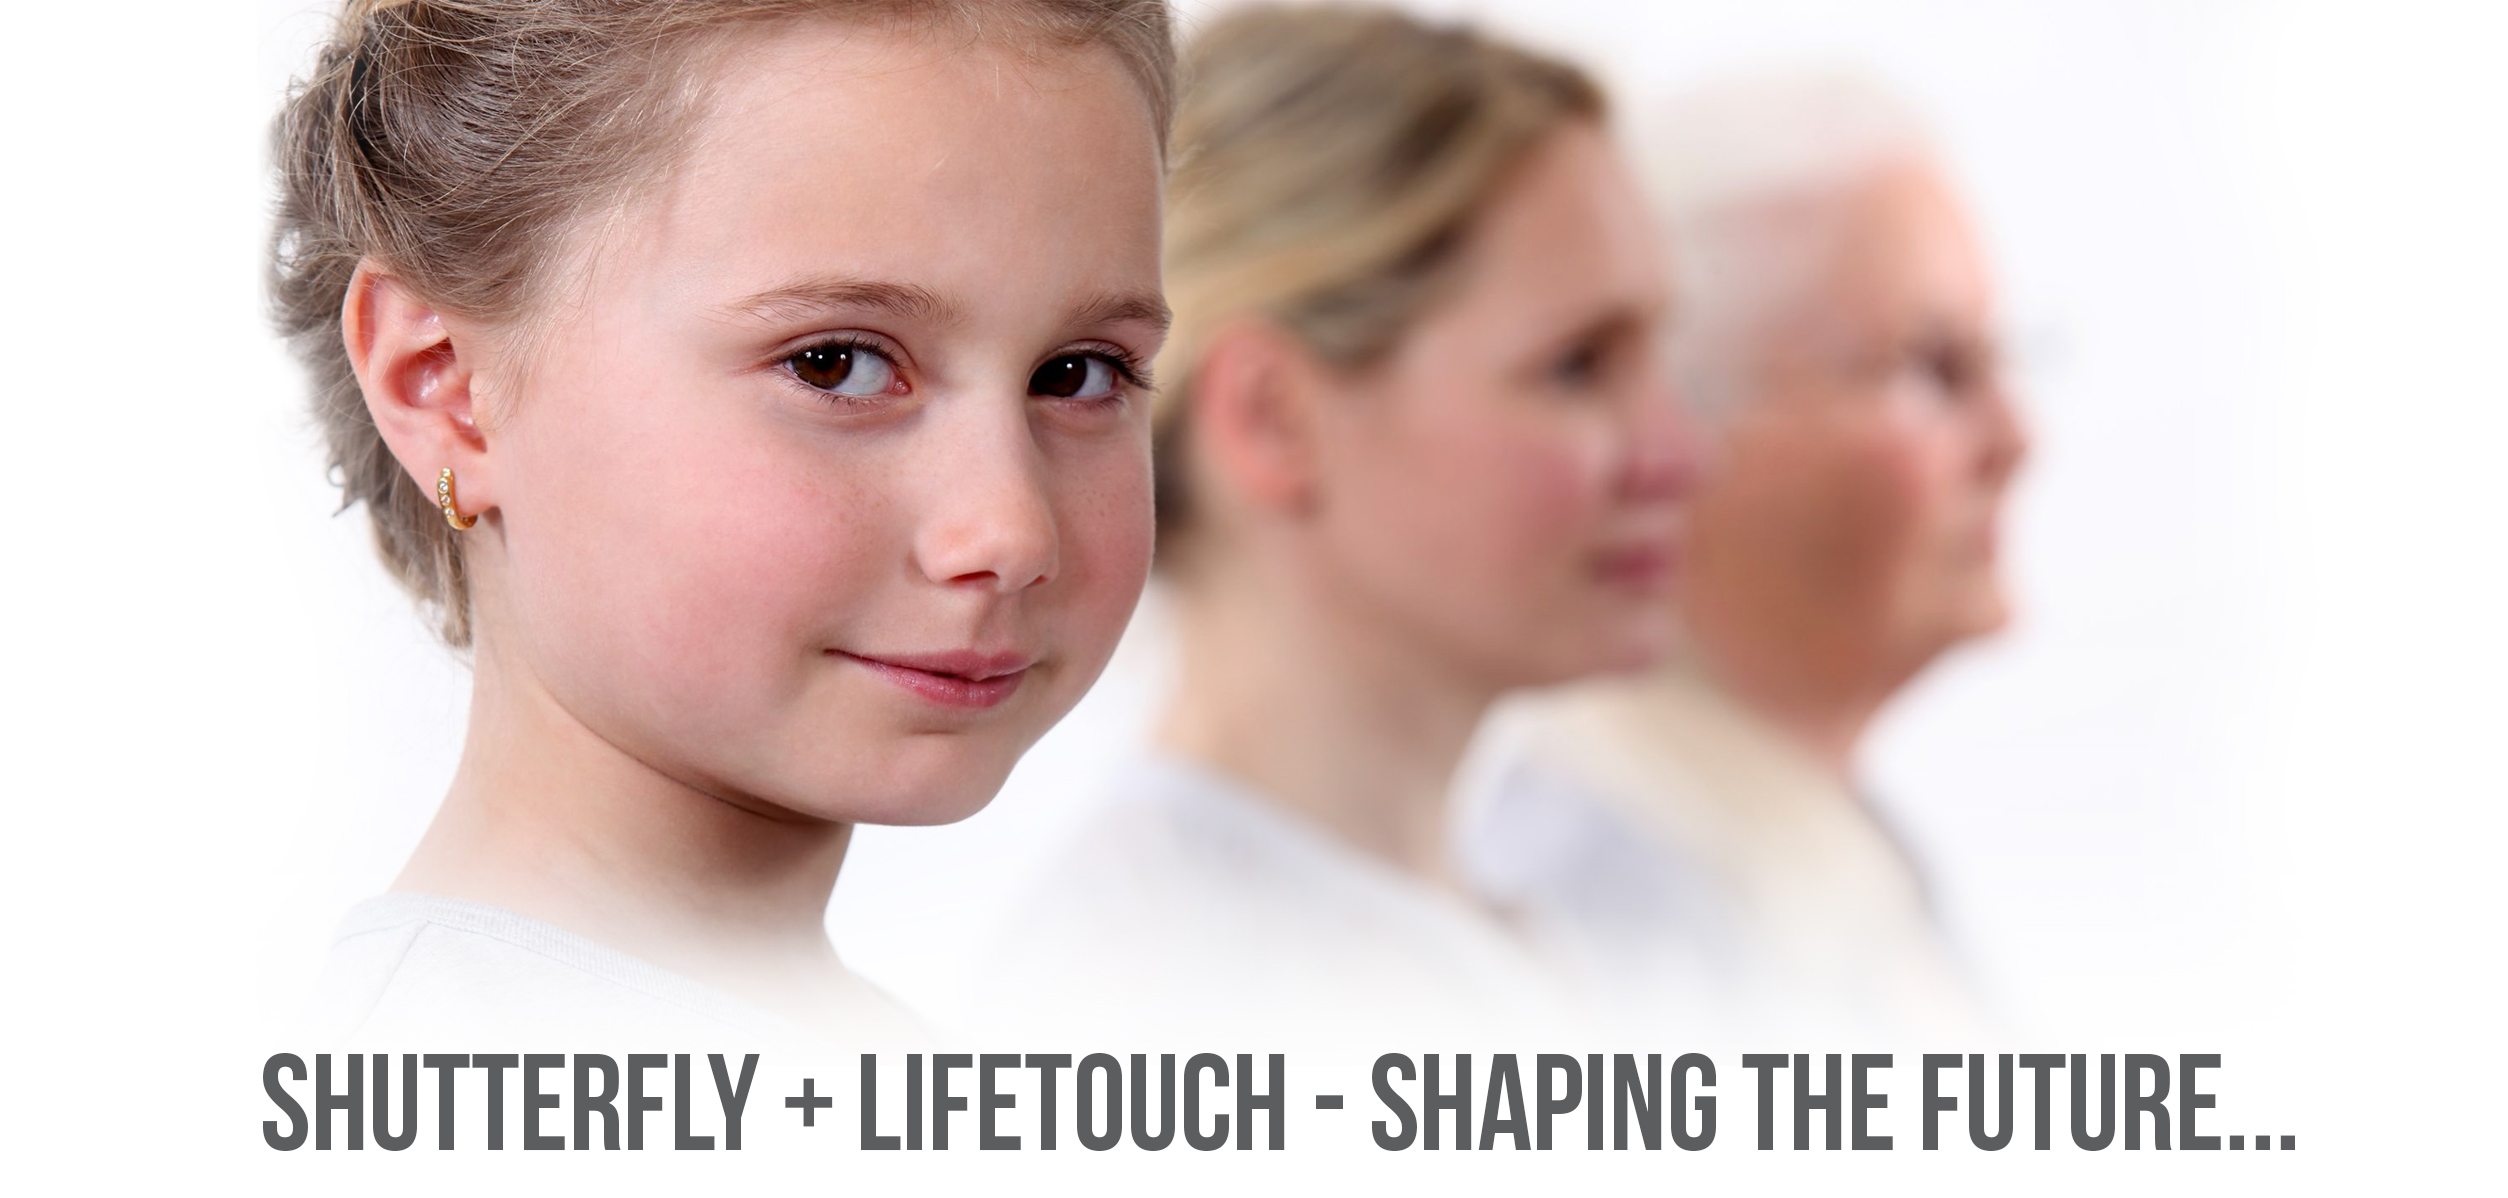 shutterfly and lifetouch we